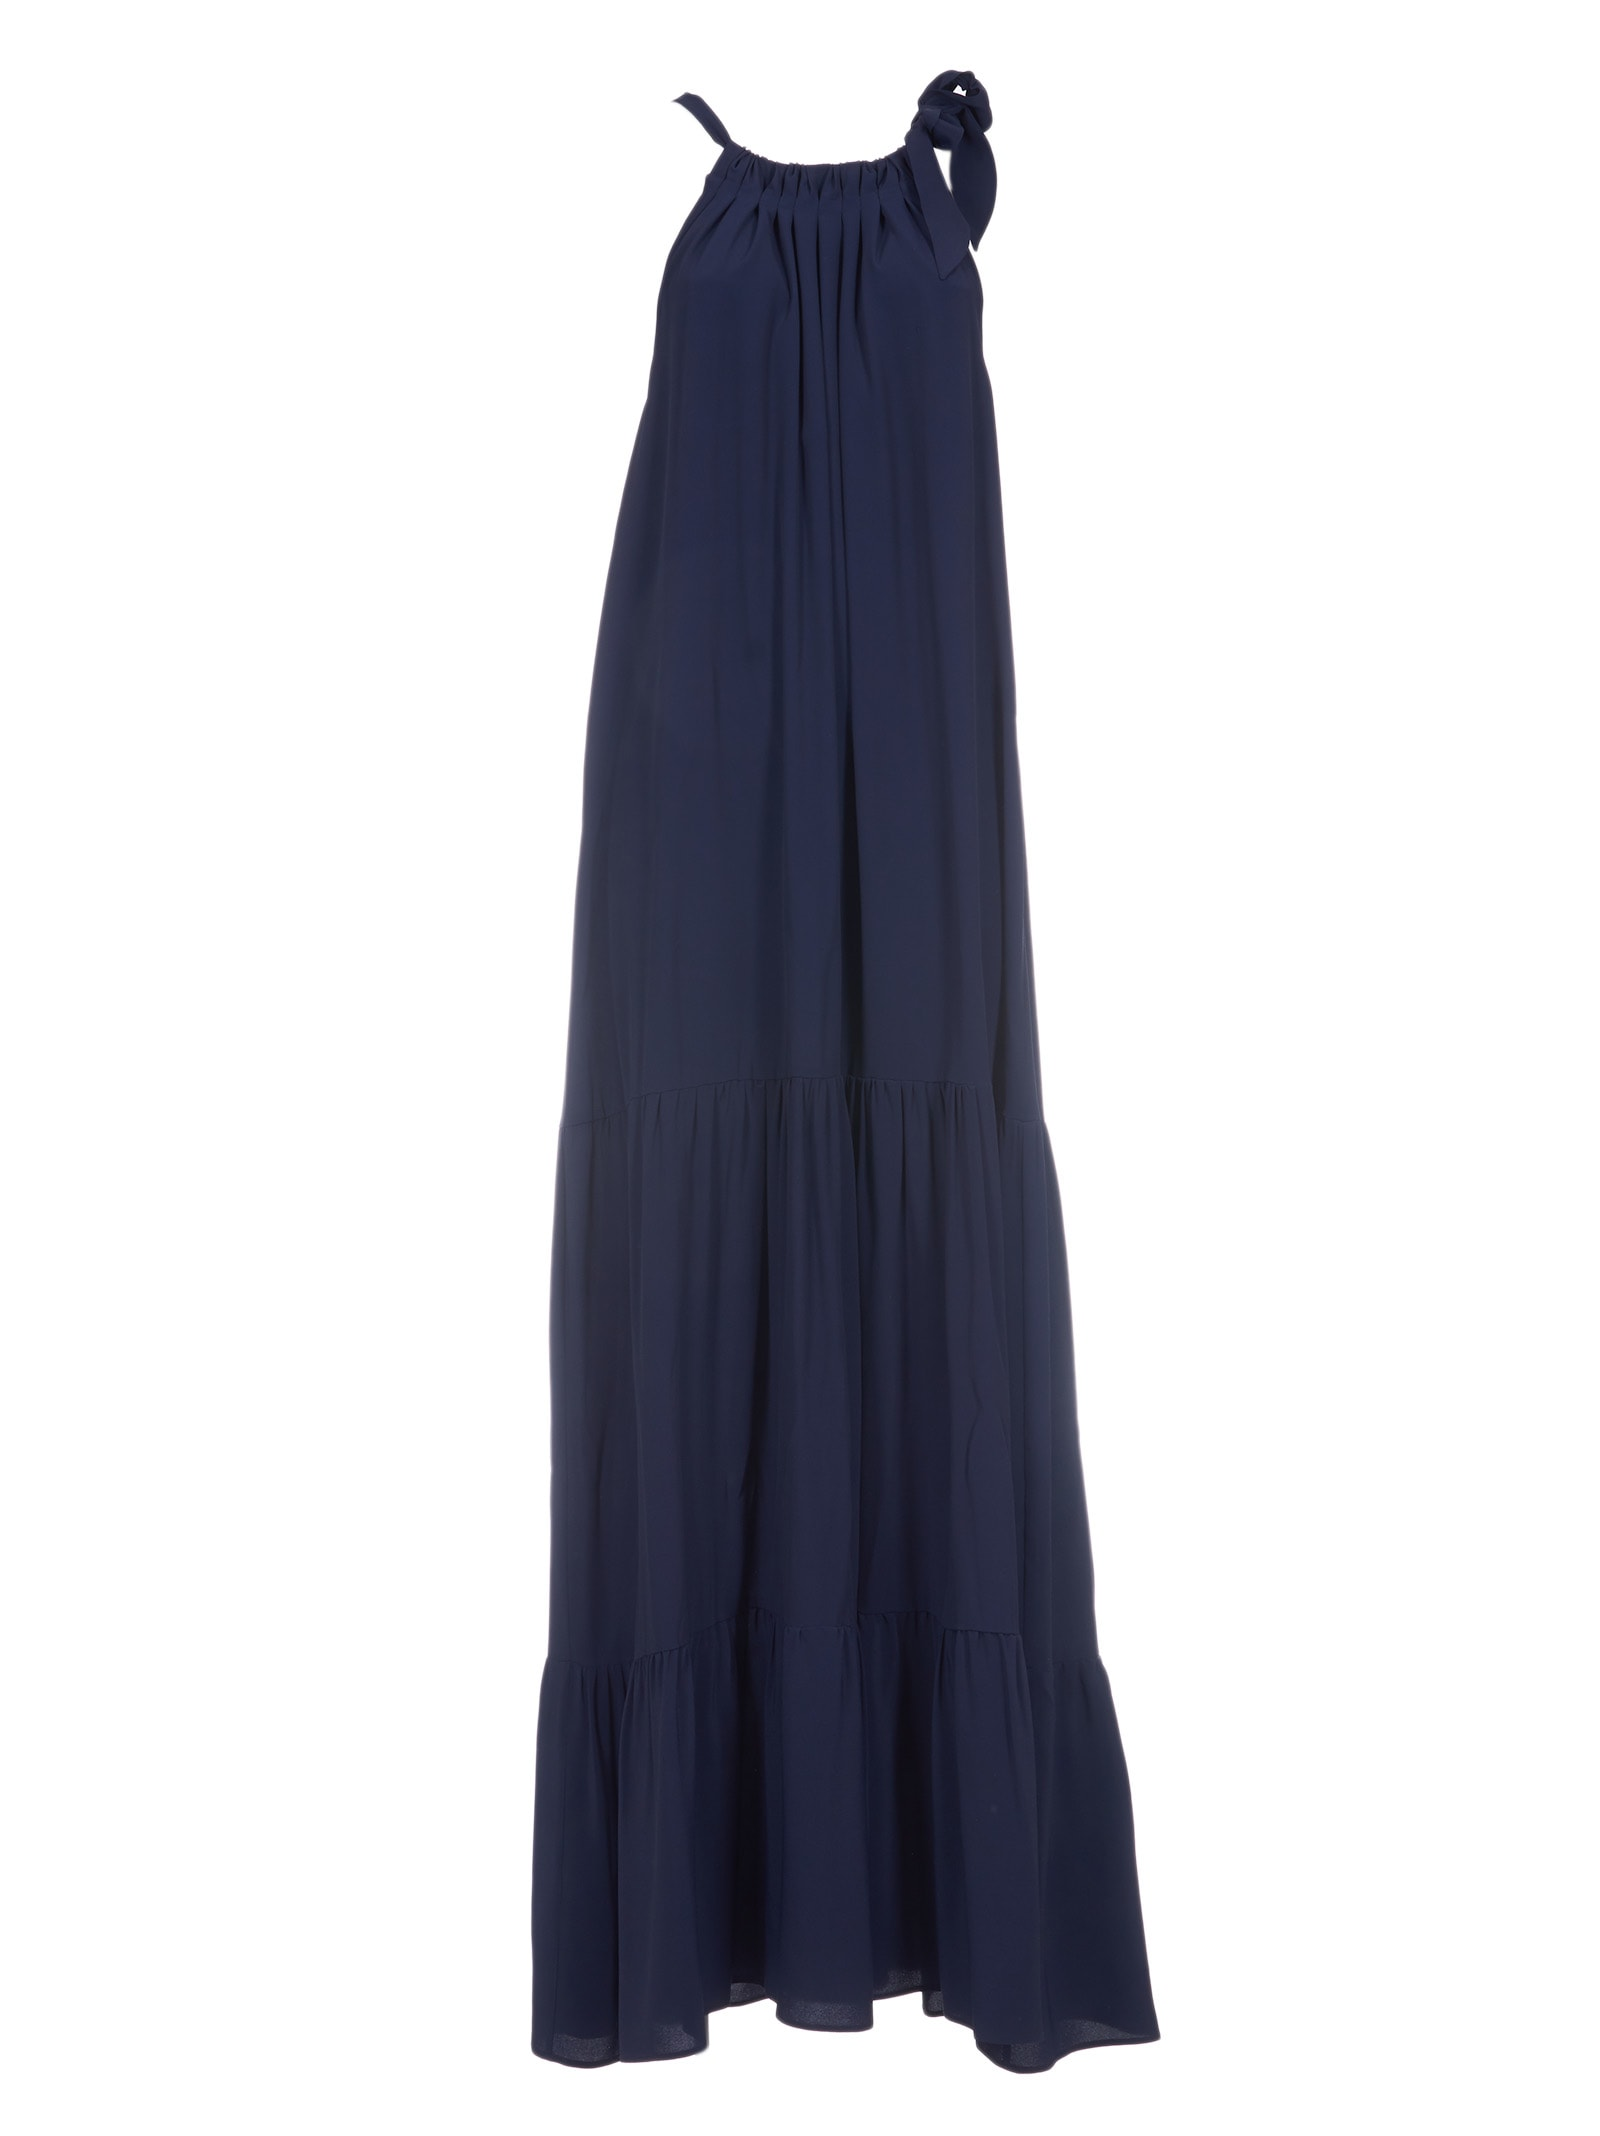 Erika Cavallini Halter-neck Gathered Dress